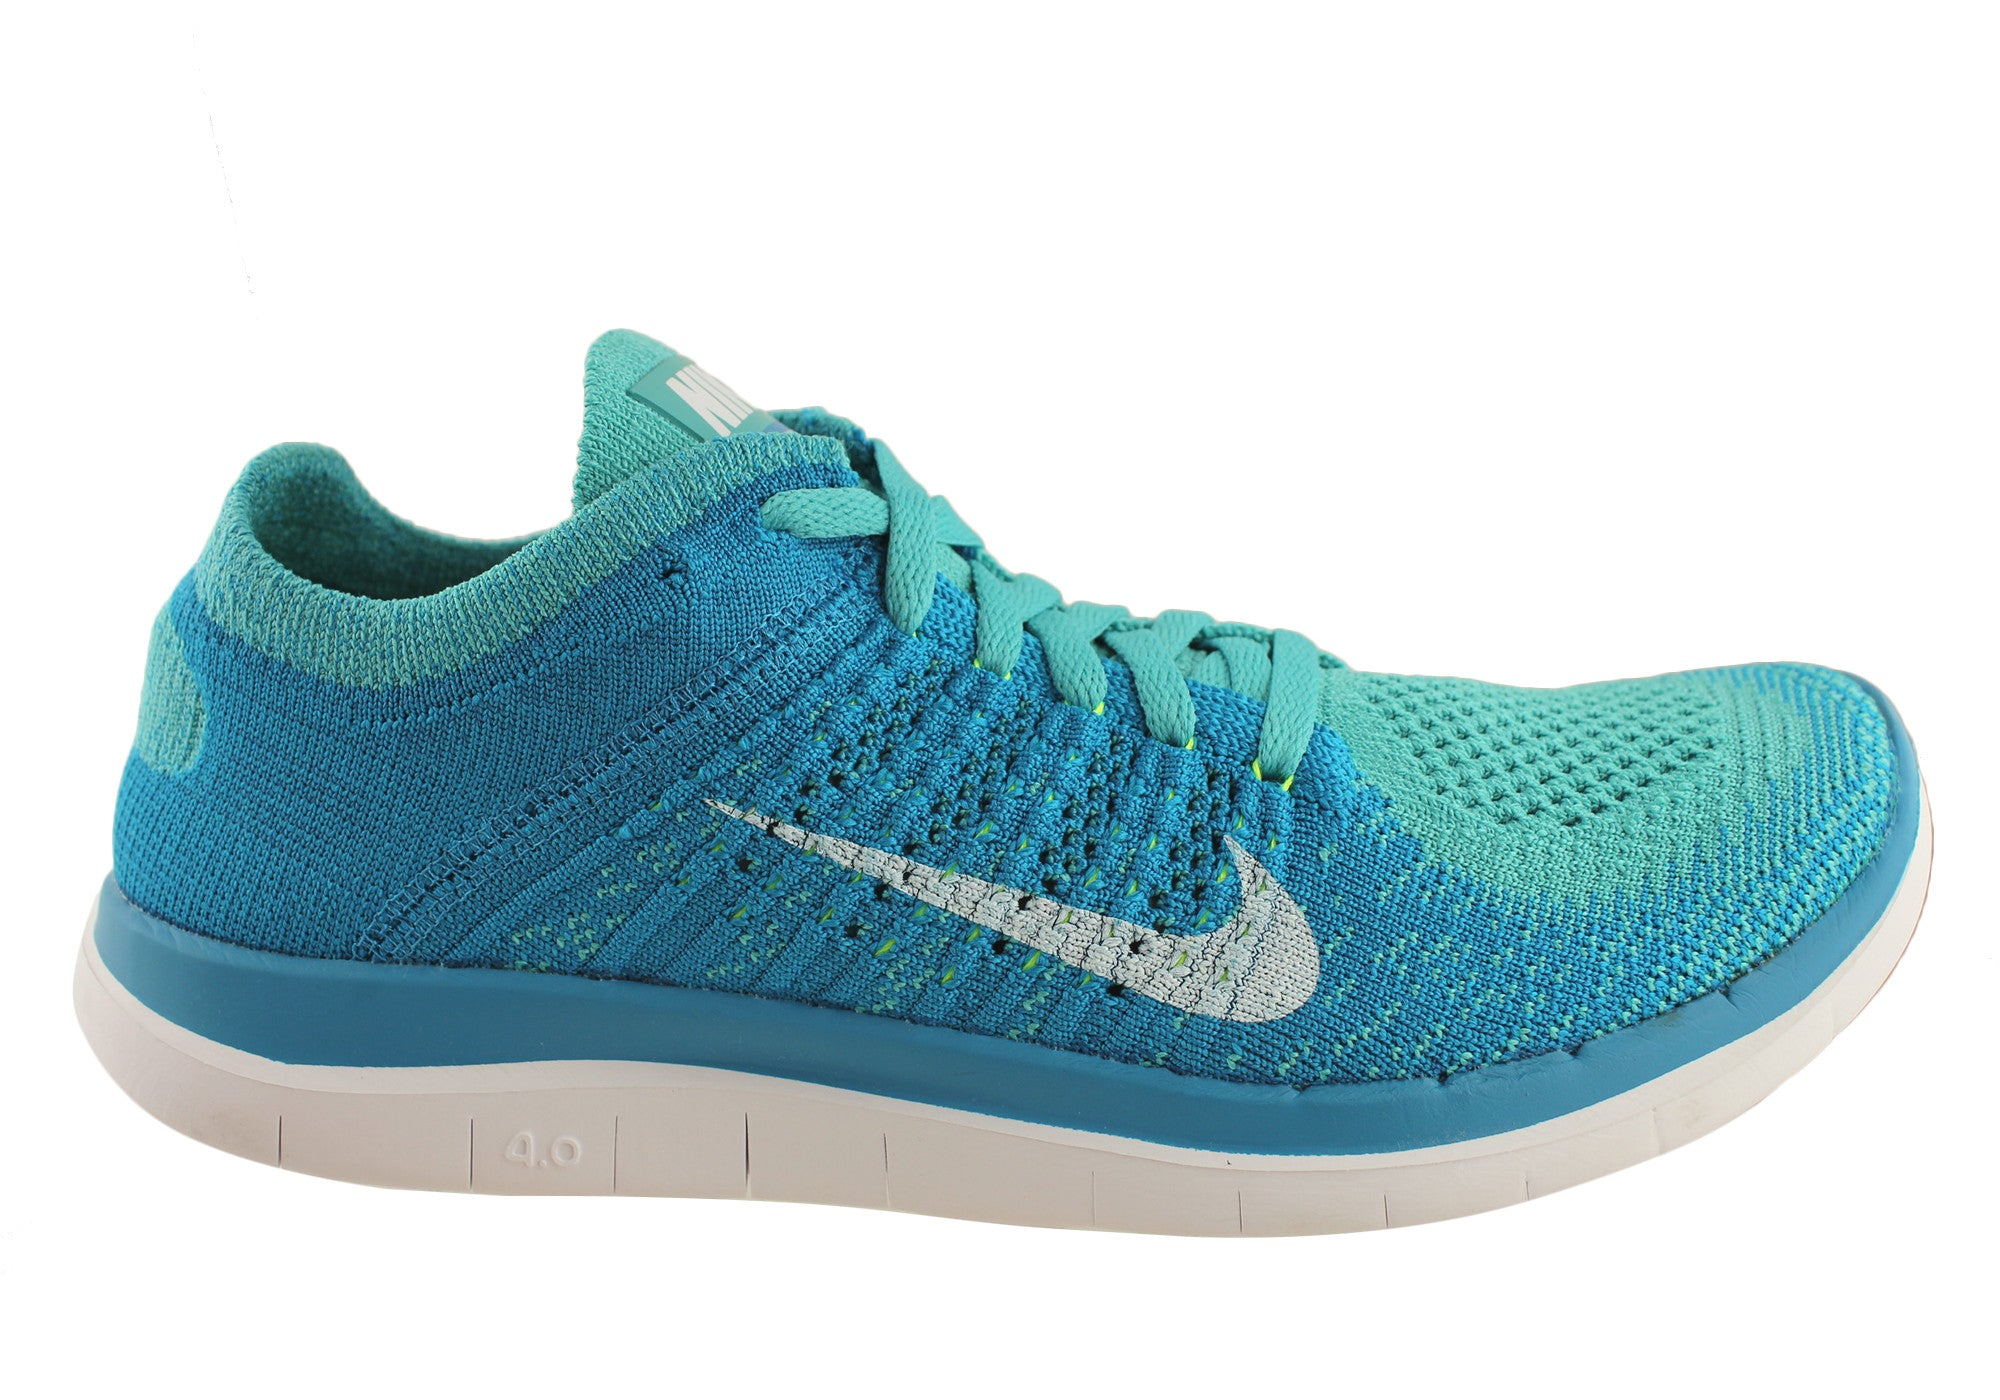 9e7a5ba762fd4 ... Flyknit 4.0 Womens Lightweight Running Shoes. Turquoise  ...